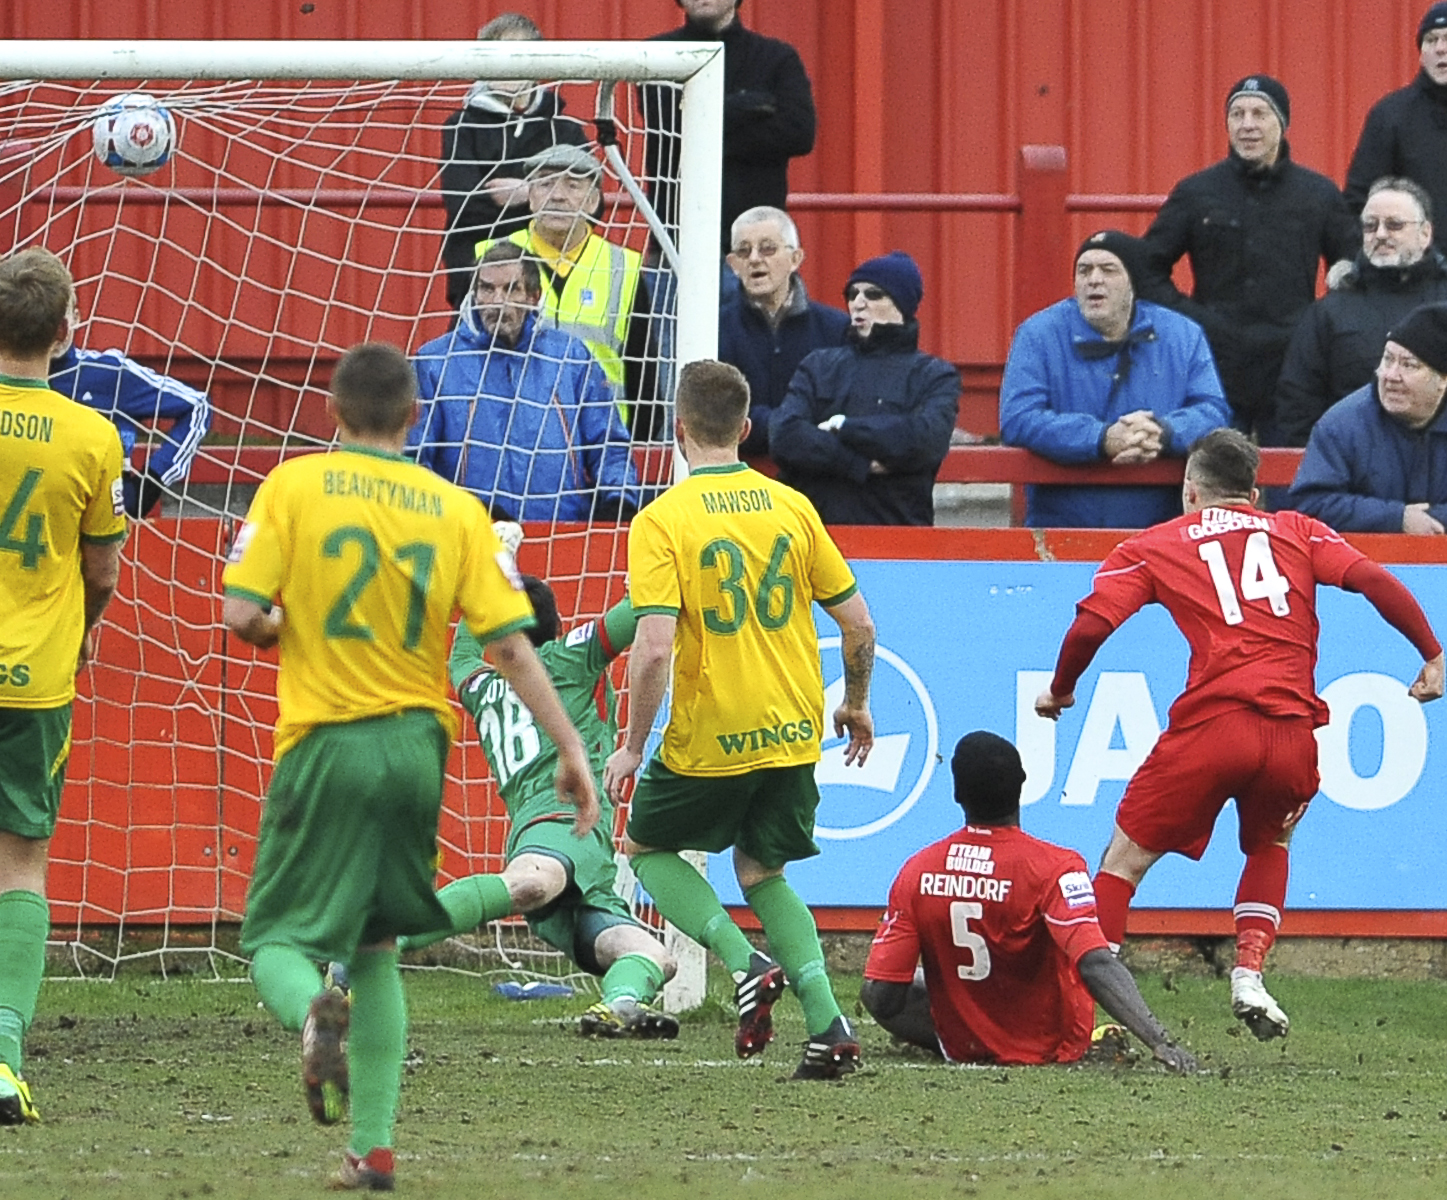 News Shopper: Matthew Godden (14) equalises late on in the second half